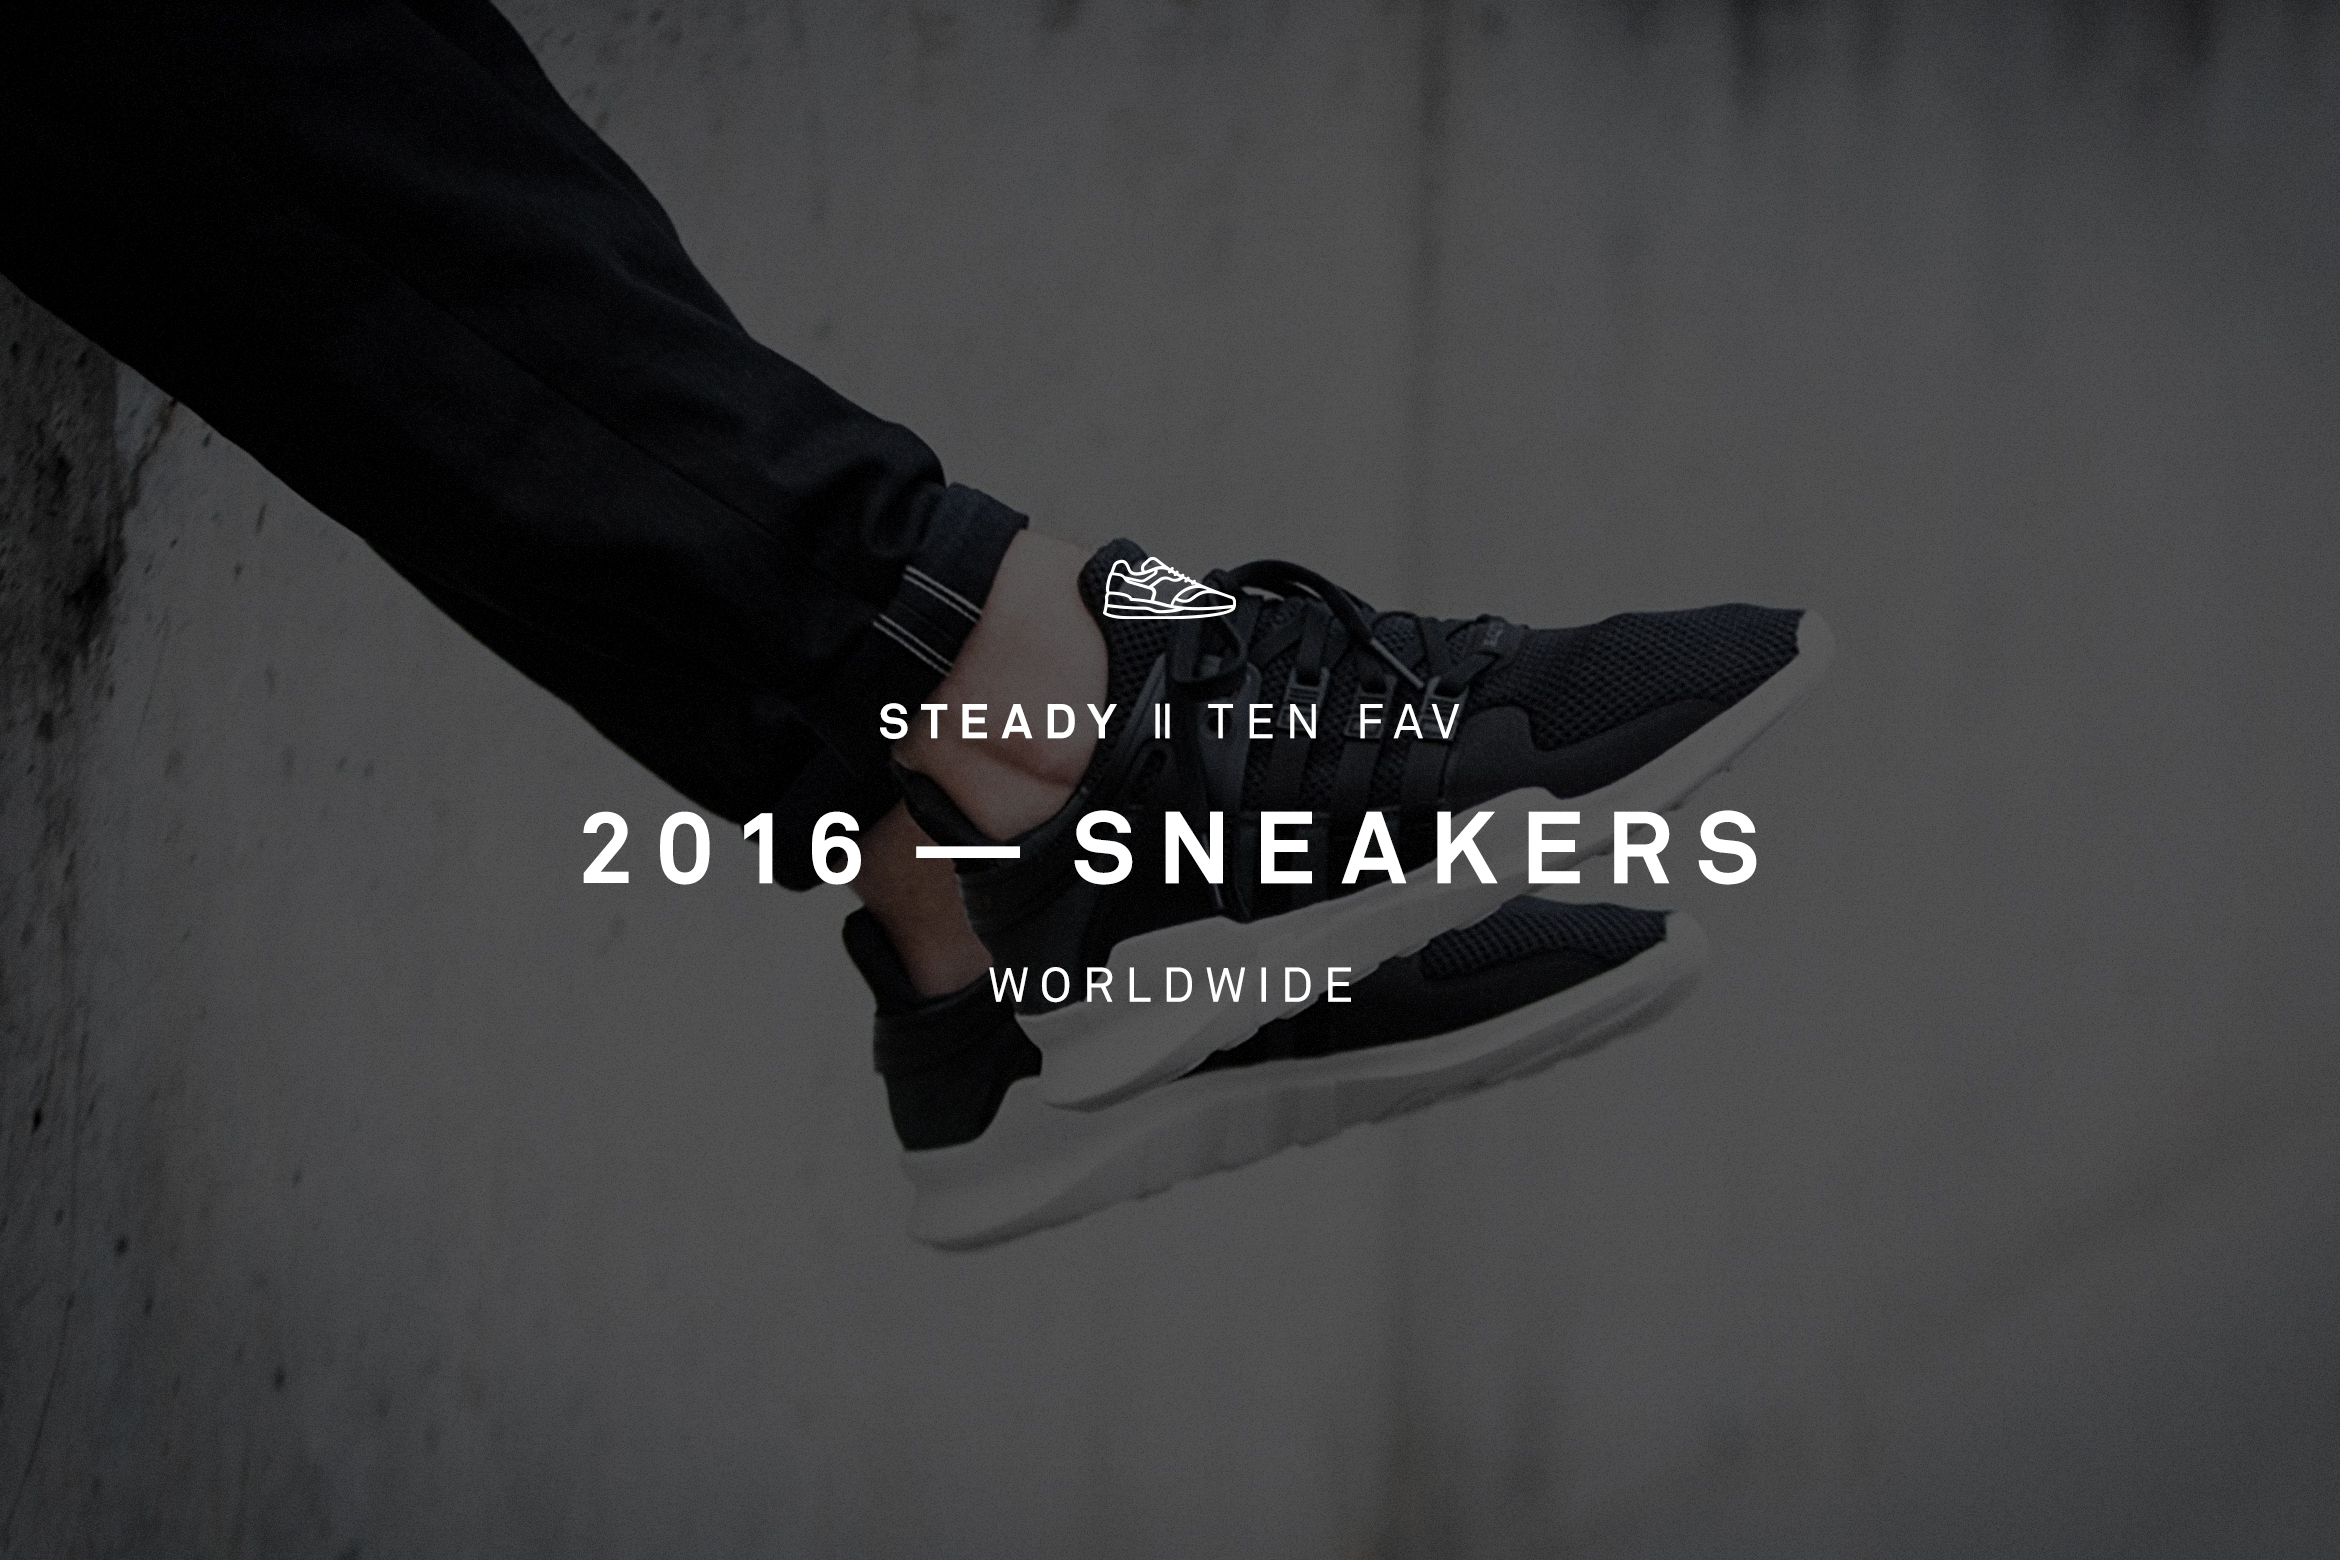 STEADY'S TEN FAV: '16 SNEAKERS